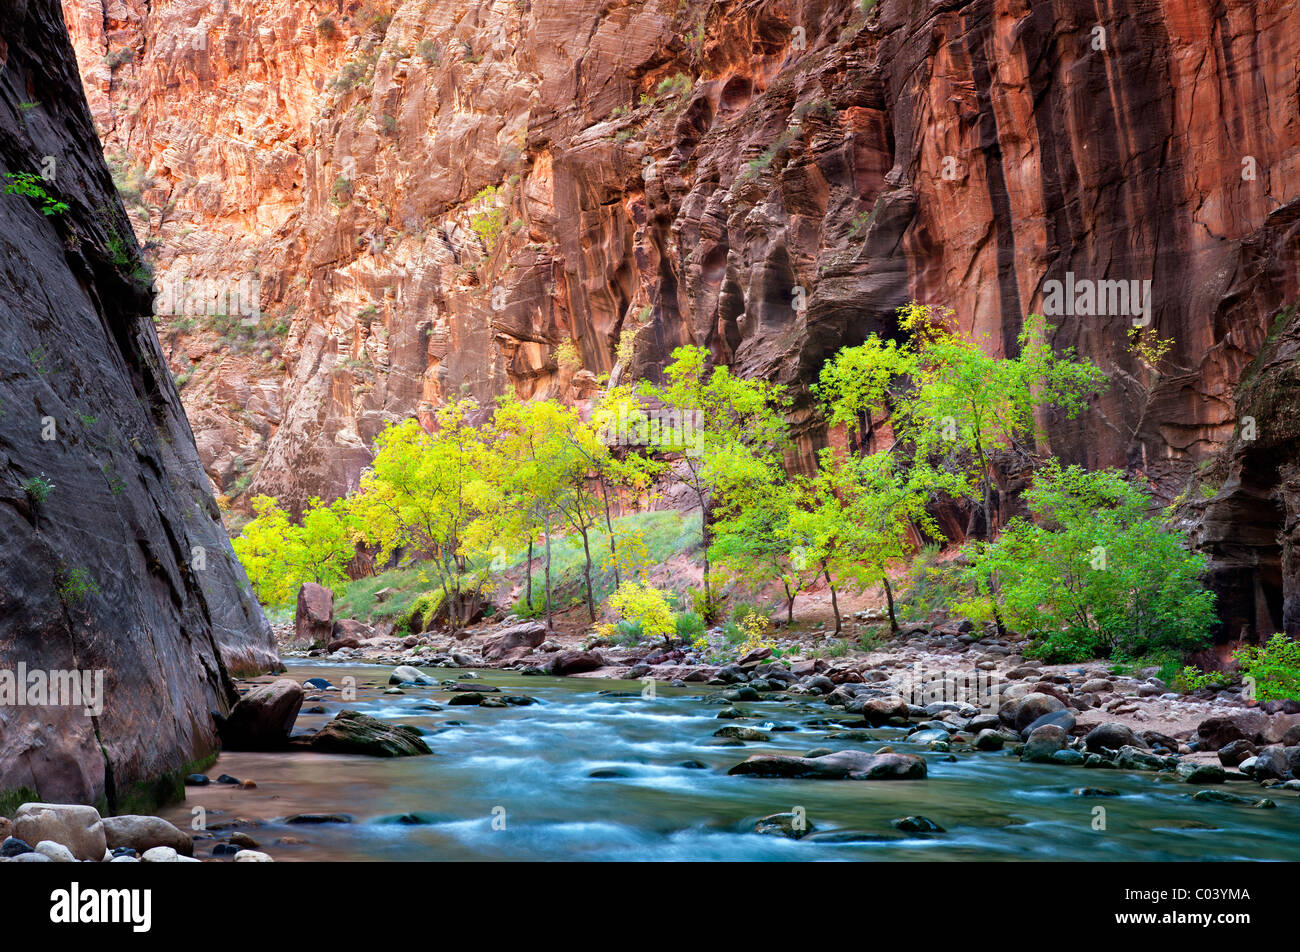 Caída de árboles coloreados en Virgin River Canyon. Parque Nacional de Zion, Utah. Foto de stock